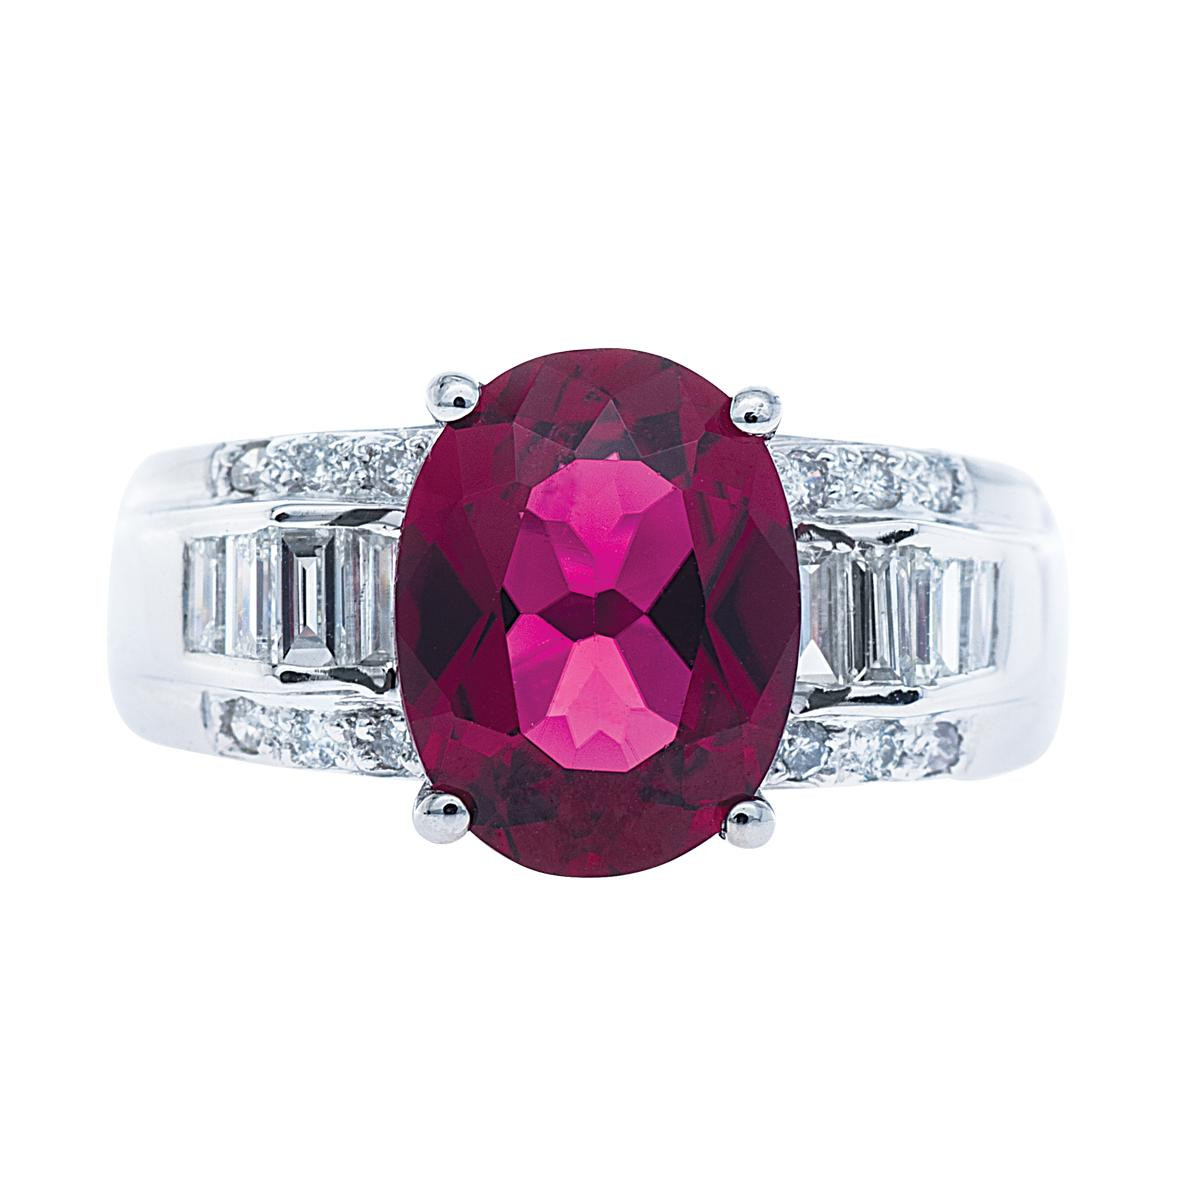 Vintage 3.05 CT Red Tourmaline & Diamond Ring